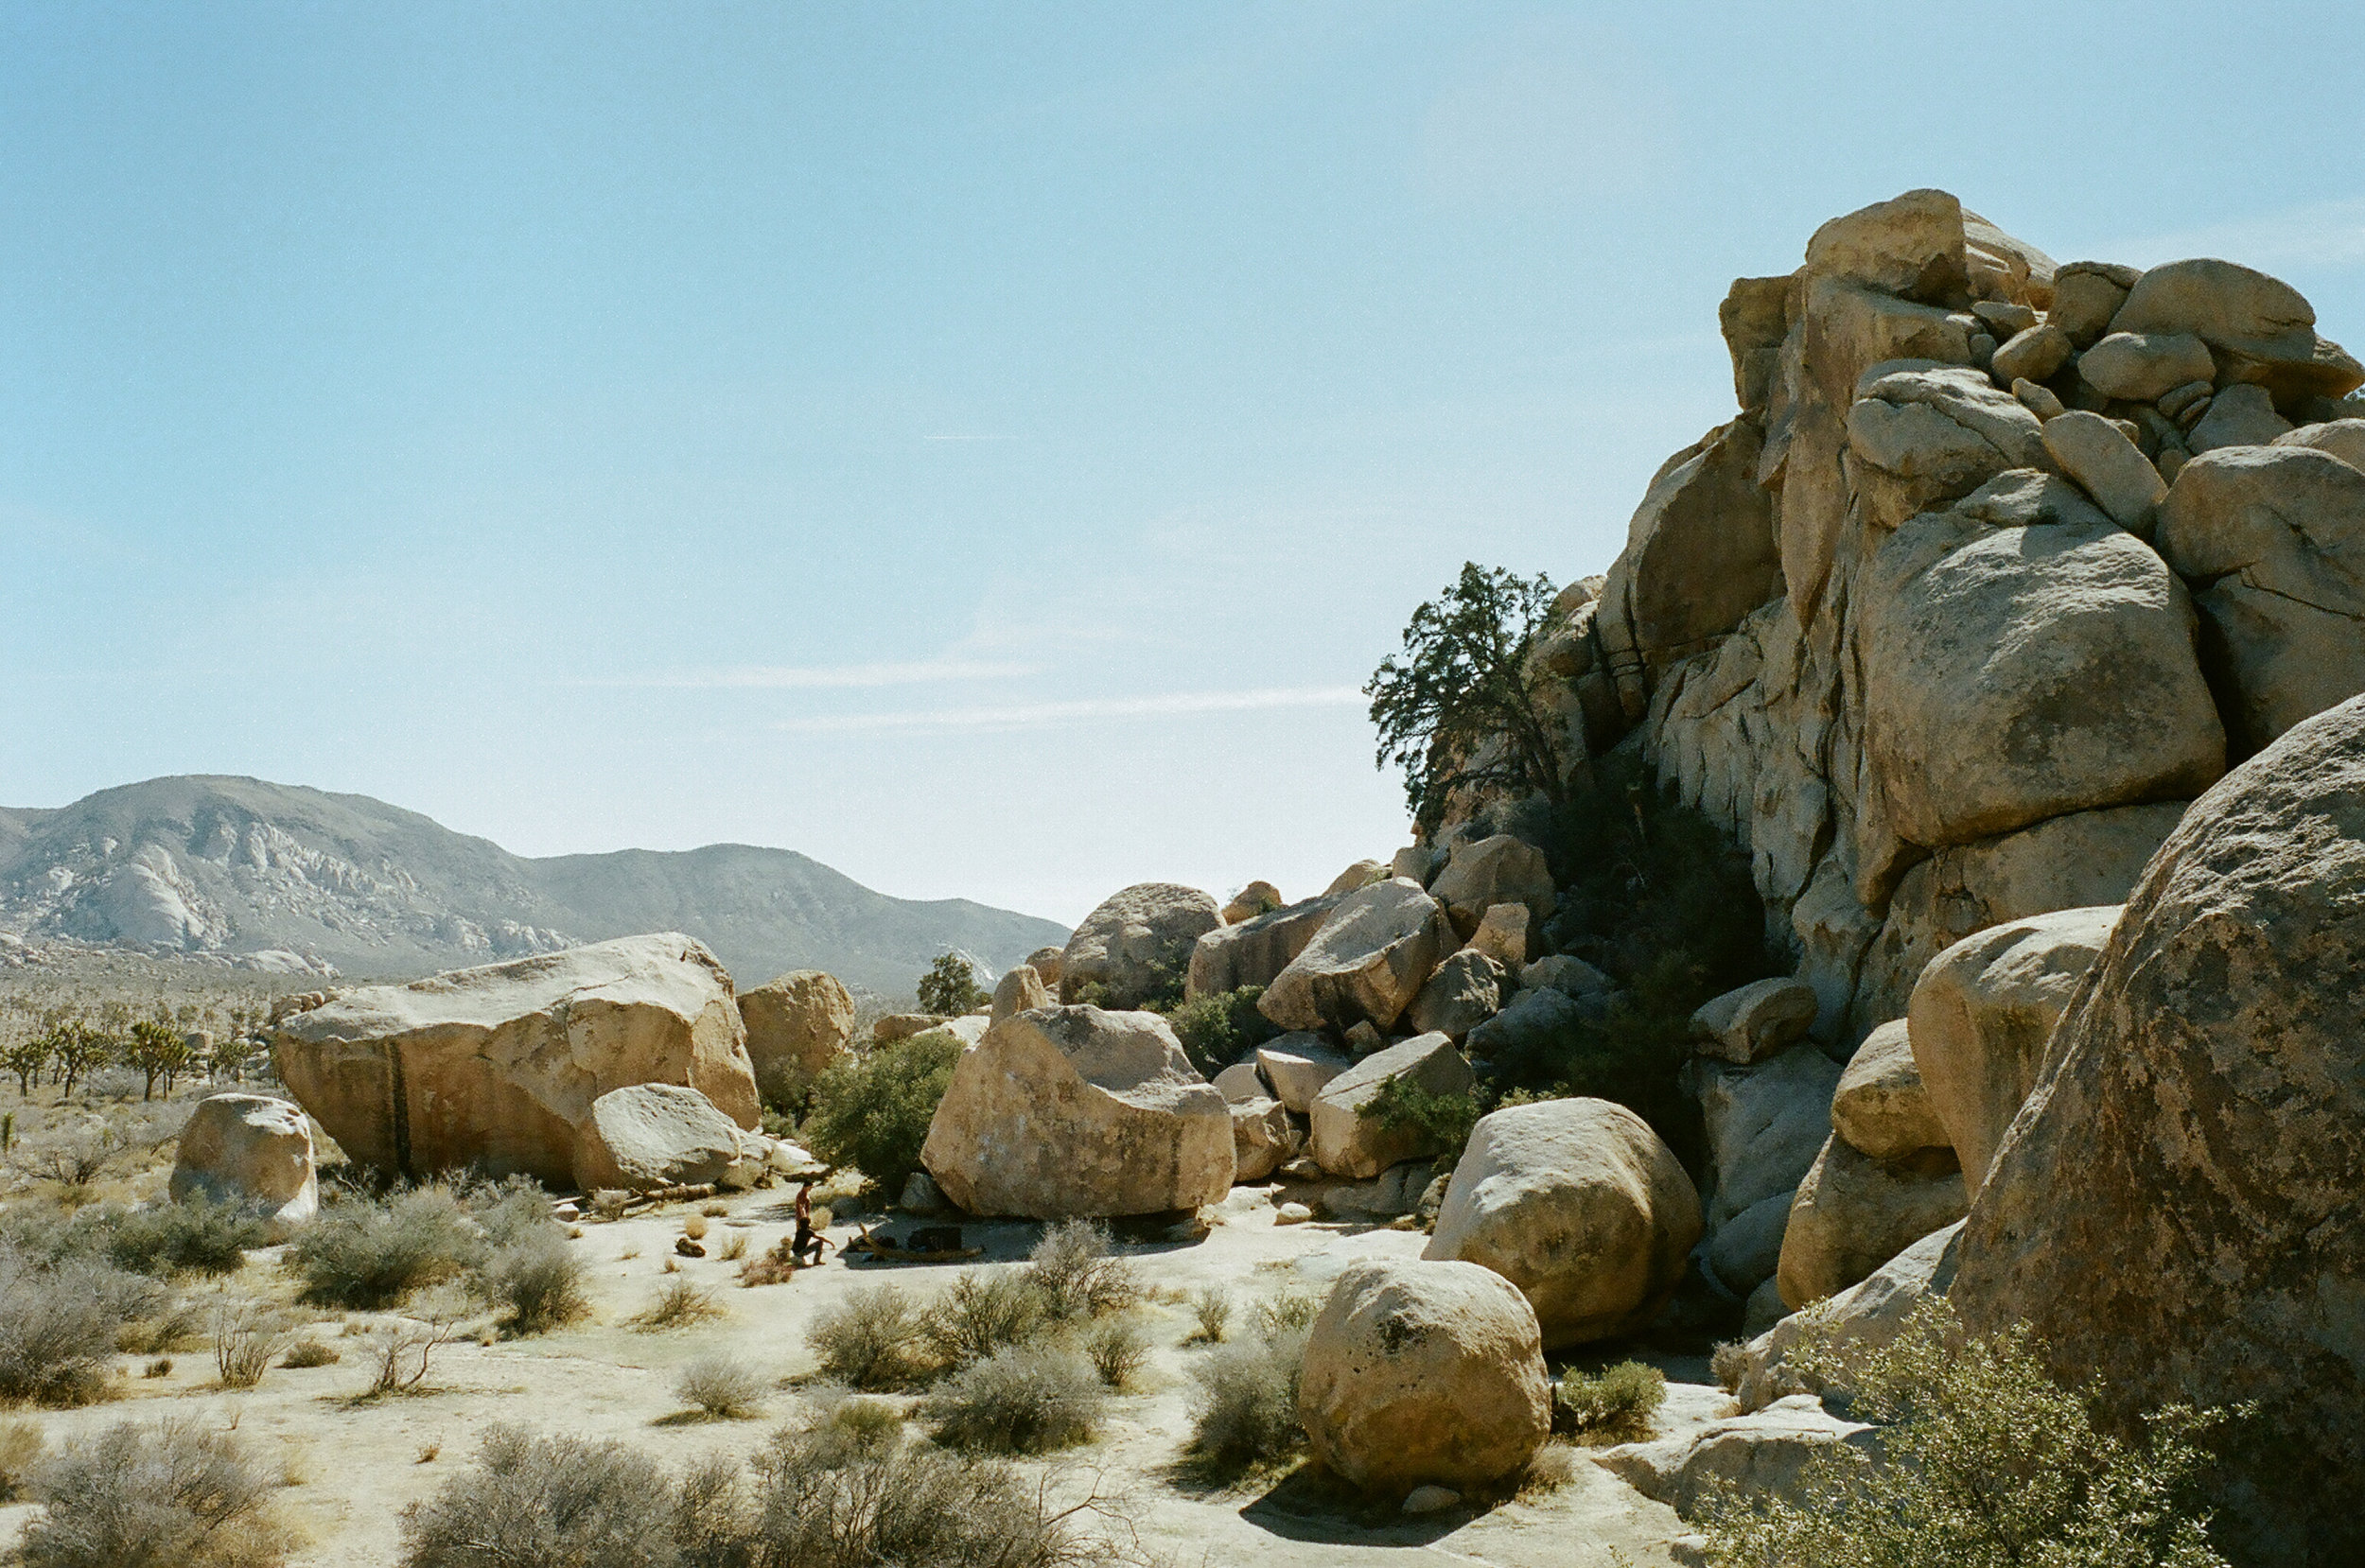 Classic Rock Climbing Problems in Joshua Tree